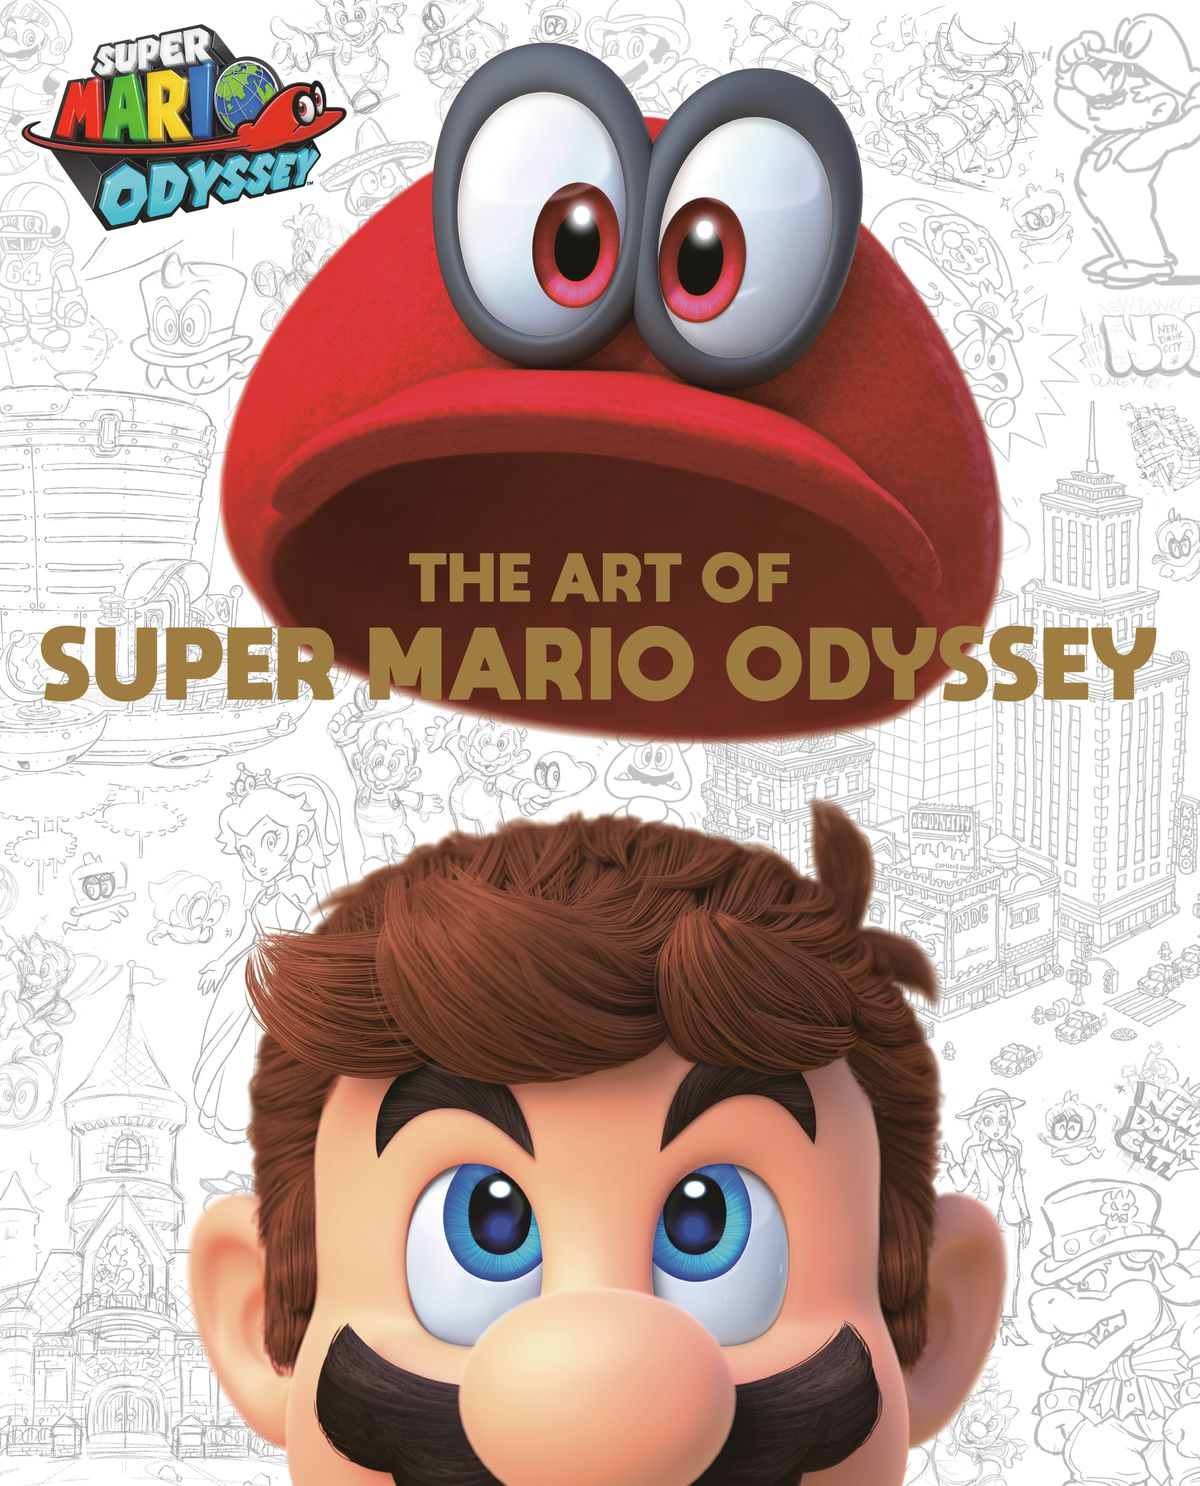 Artwork of Mario in front of pencil sketches from The Art of Super Mario Odyssey